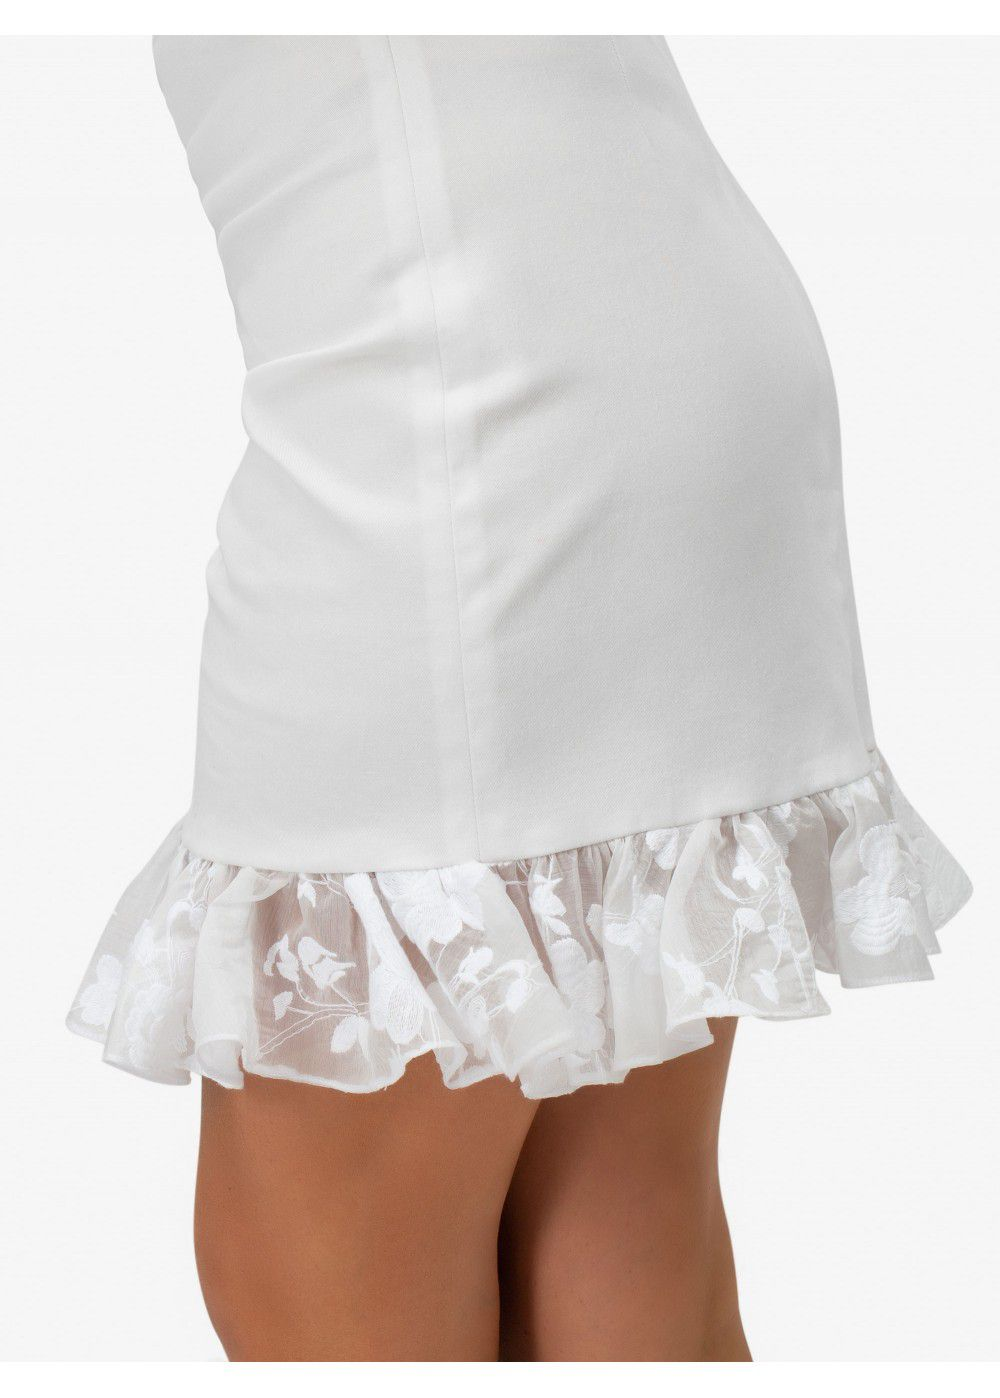 Masterpiece White Mini Dress